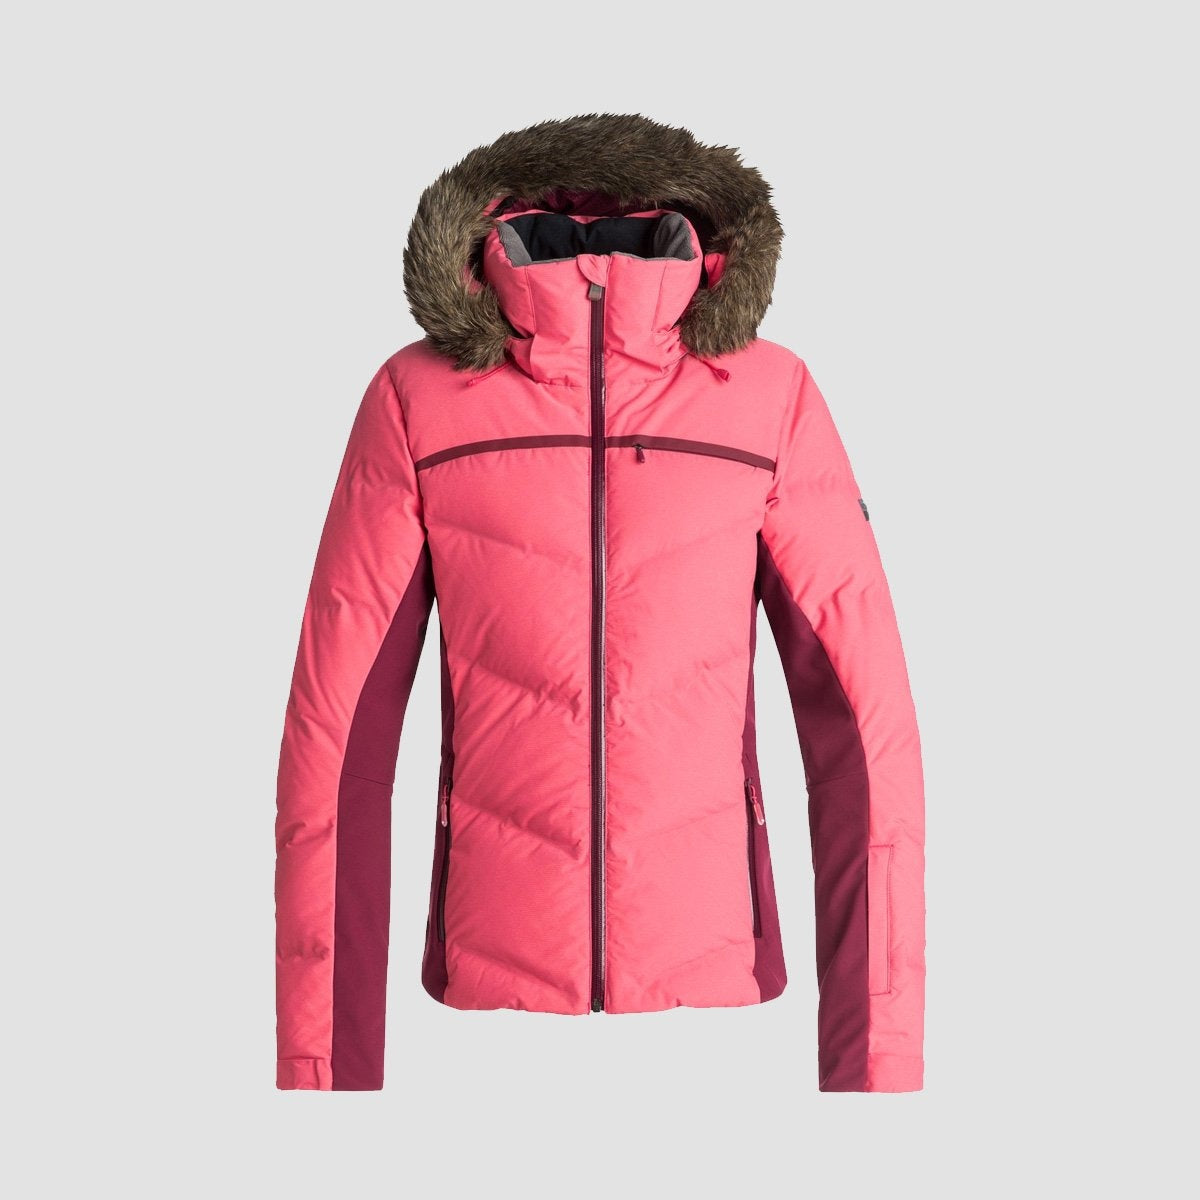 Roxy Snowstorm Snow Jacket Teaberry - Womens - Snowboard